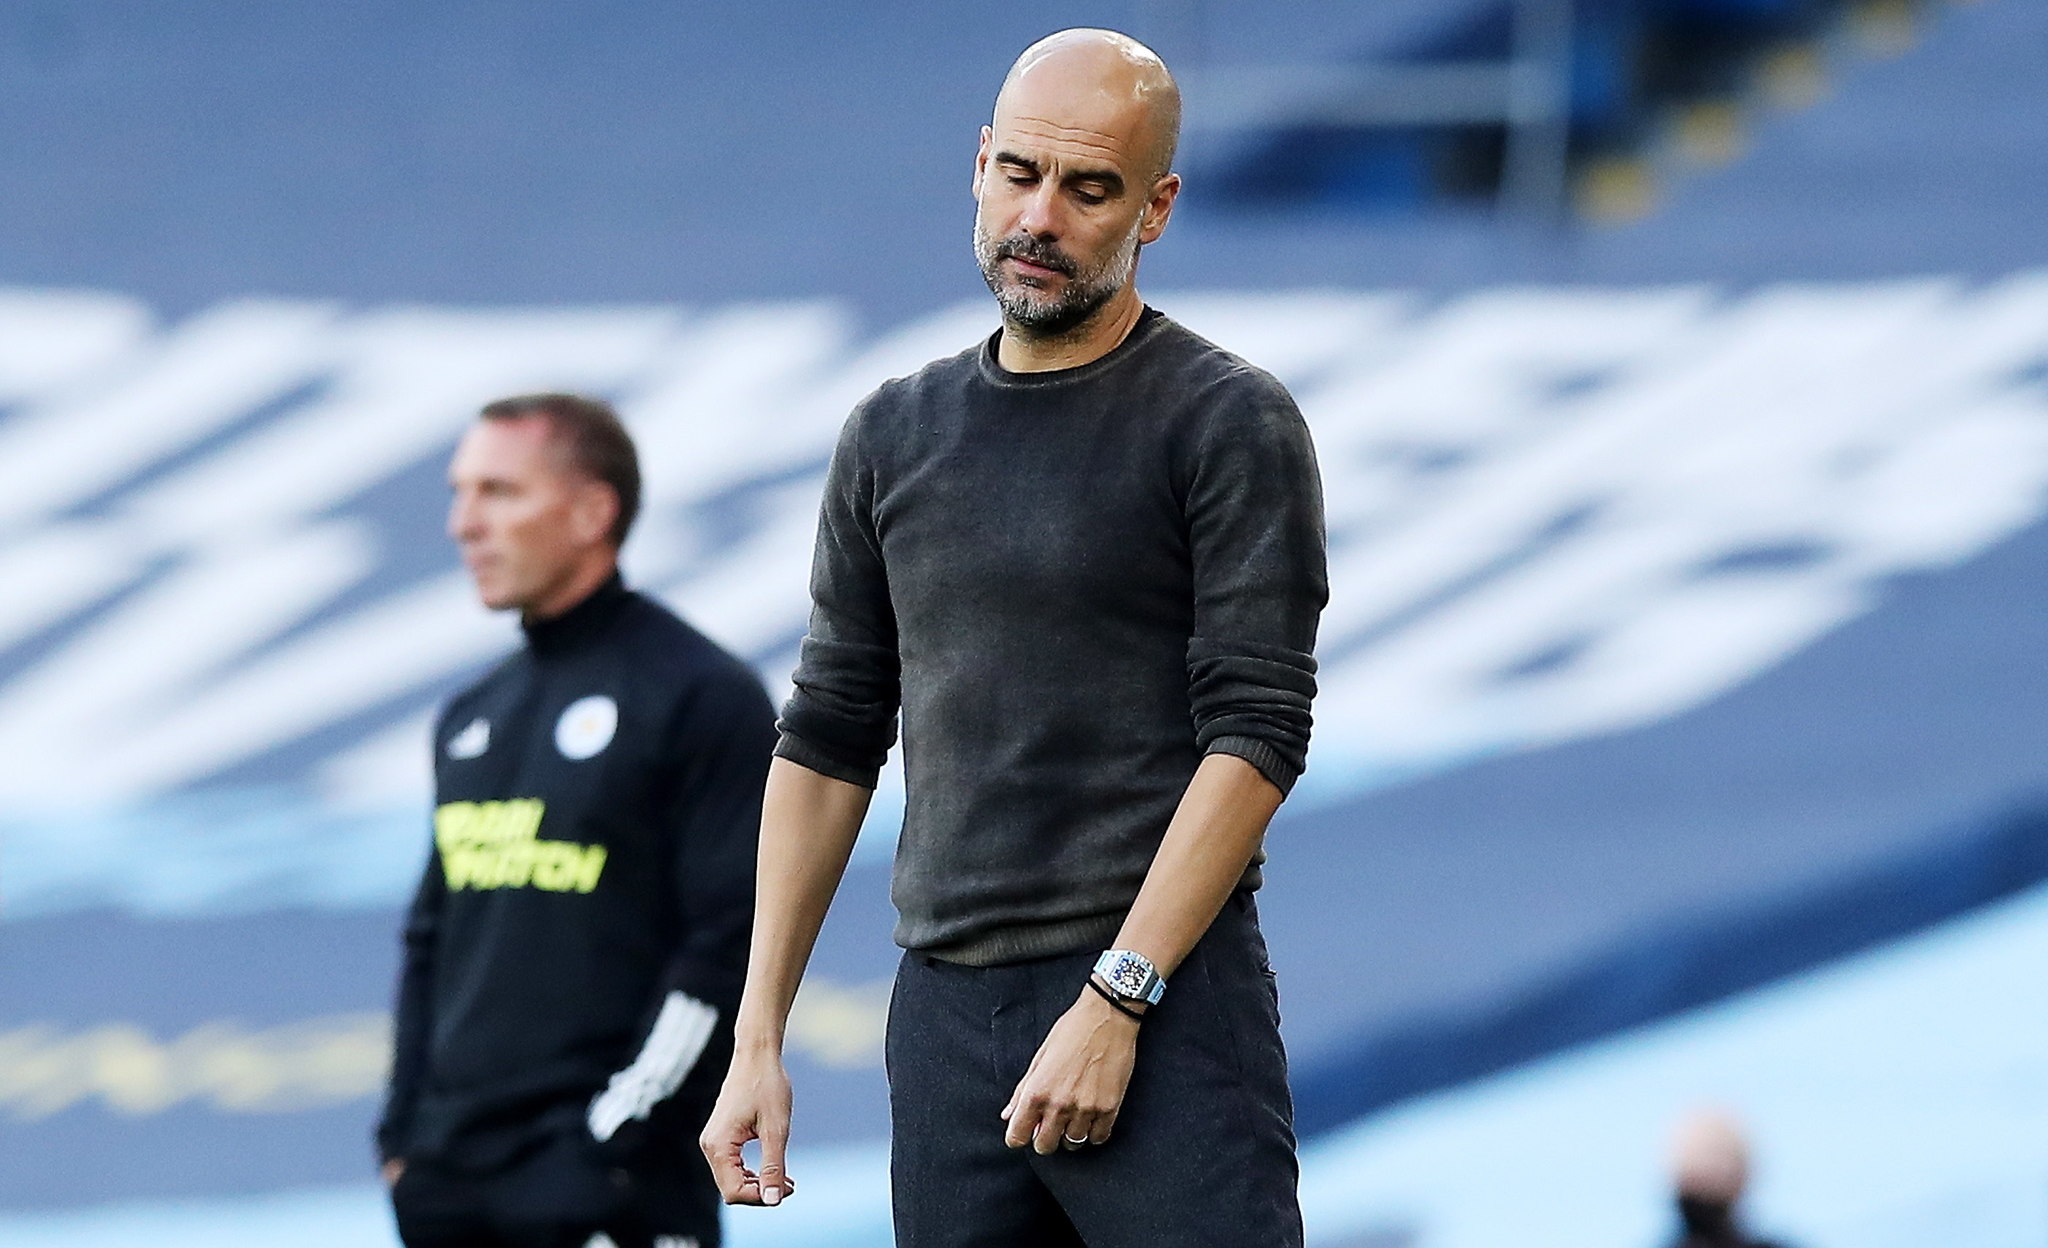 Manchester (United Kingdom), 27/09/2020.- Manchester City manager Pep lt;HIT gt;Guardiola lt;/HIT gt; during the English Premier League match between Manchester City and Leicester City in Manchester, Britain, 27 September 2020. (Reino Unido) EFE/EPA/Martin Rickett / POOL EDITORIAL USE ONLY. No use with unauthorized audio, video, data, fixture lists, club/league logos or live services. Online in-match use limited to 120 images, no video emulation. No use in betting, games or single club/league/player publications